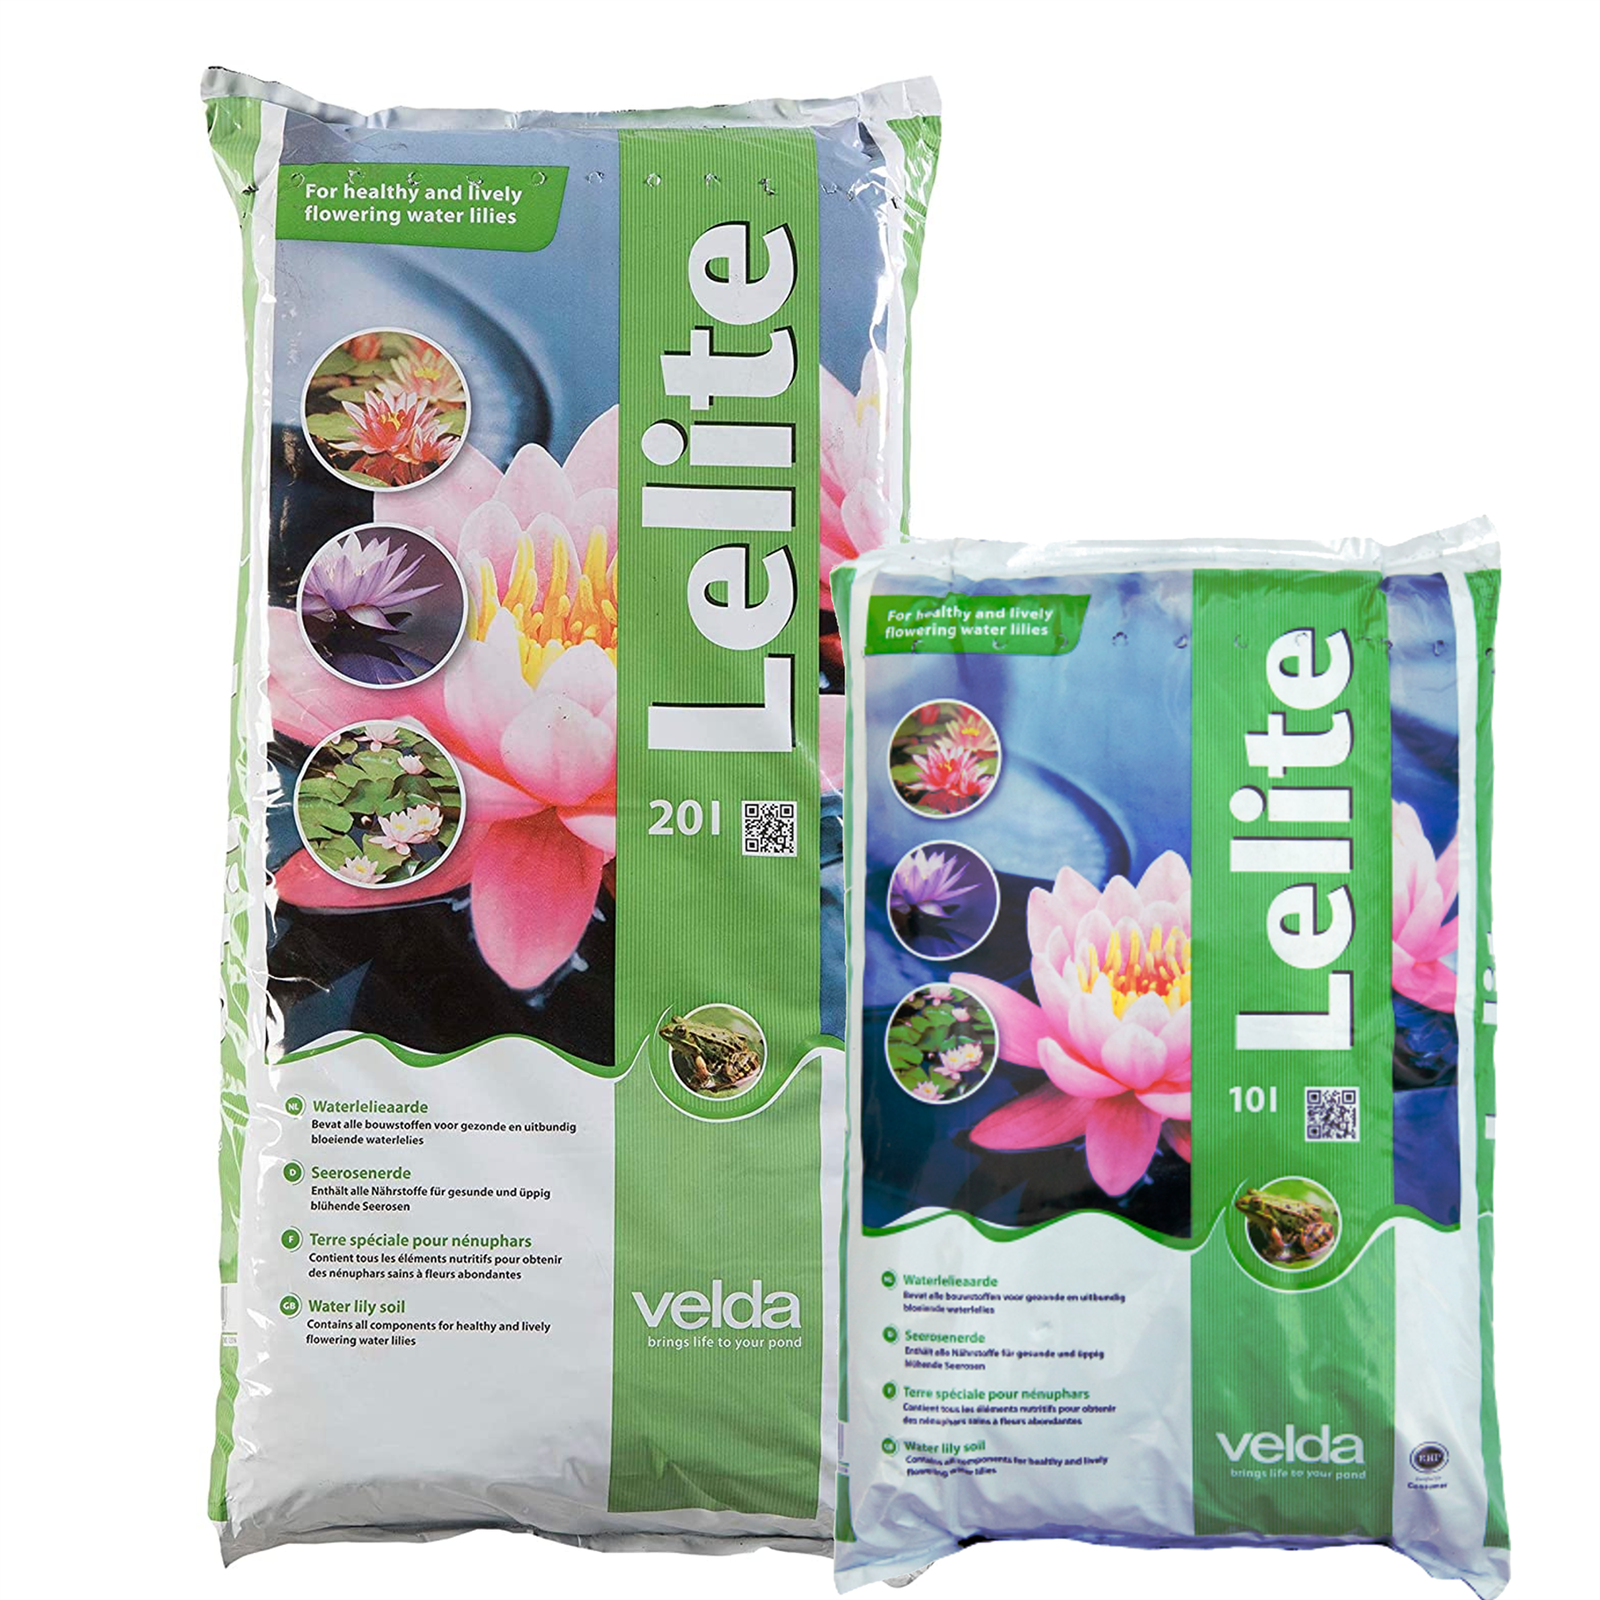 VELDA LELITE POND WATER LILY SOIL COMPOST PLANT SUBSTRATE NUTRIENTS MINERALS